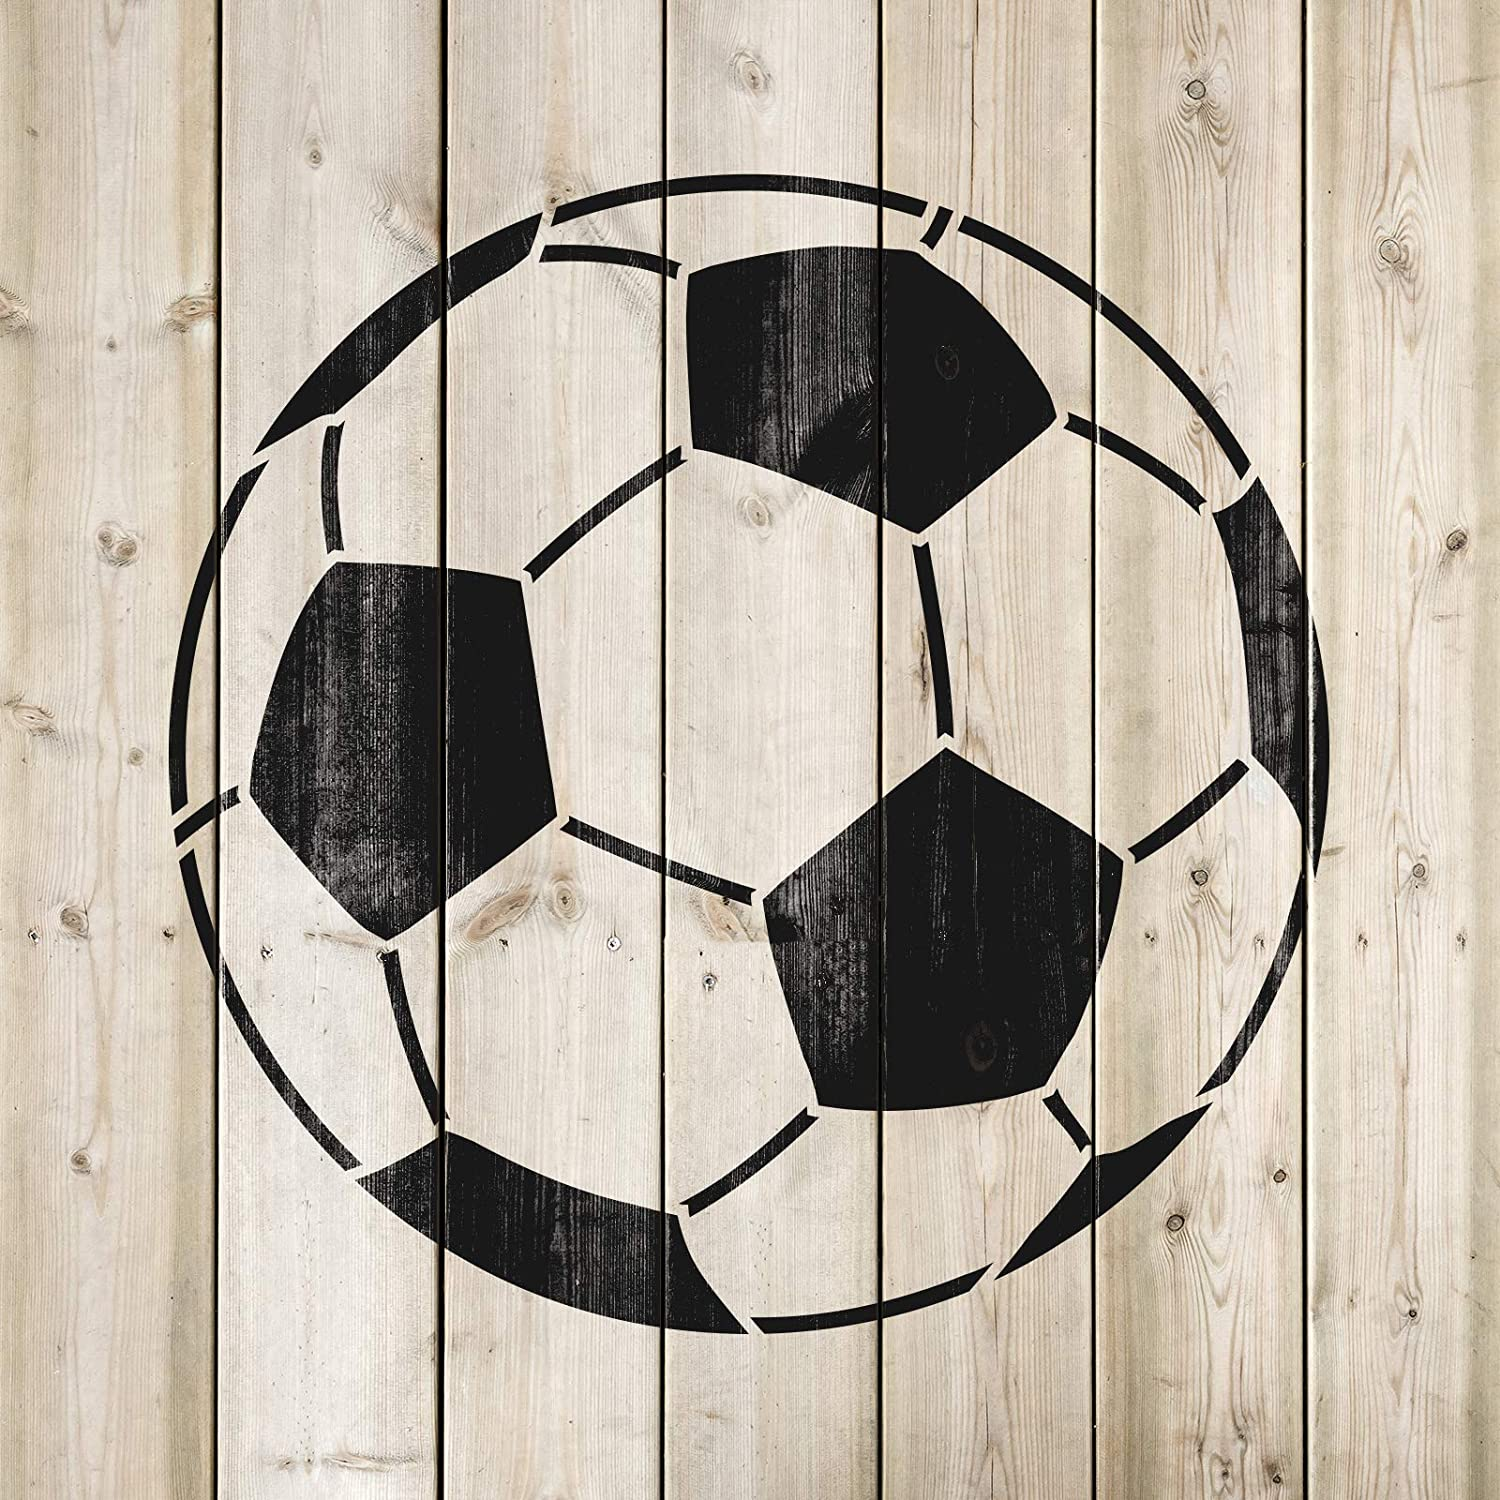 Reusable Stencils for Painting in Small /& Large Sizes Soccer Ball Stencil Template for Walls and Crafts